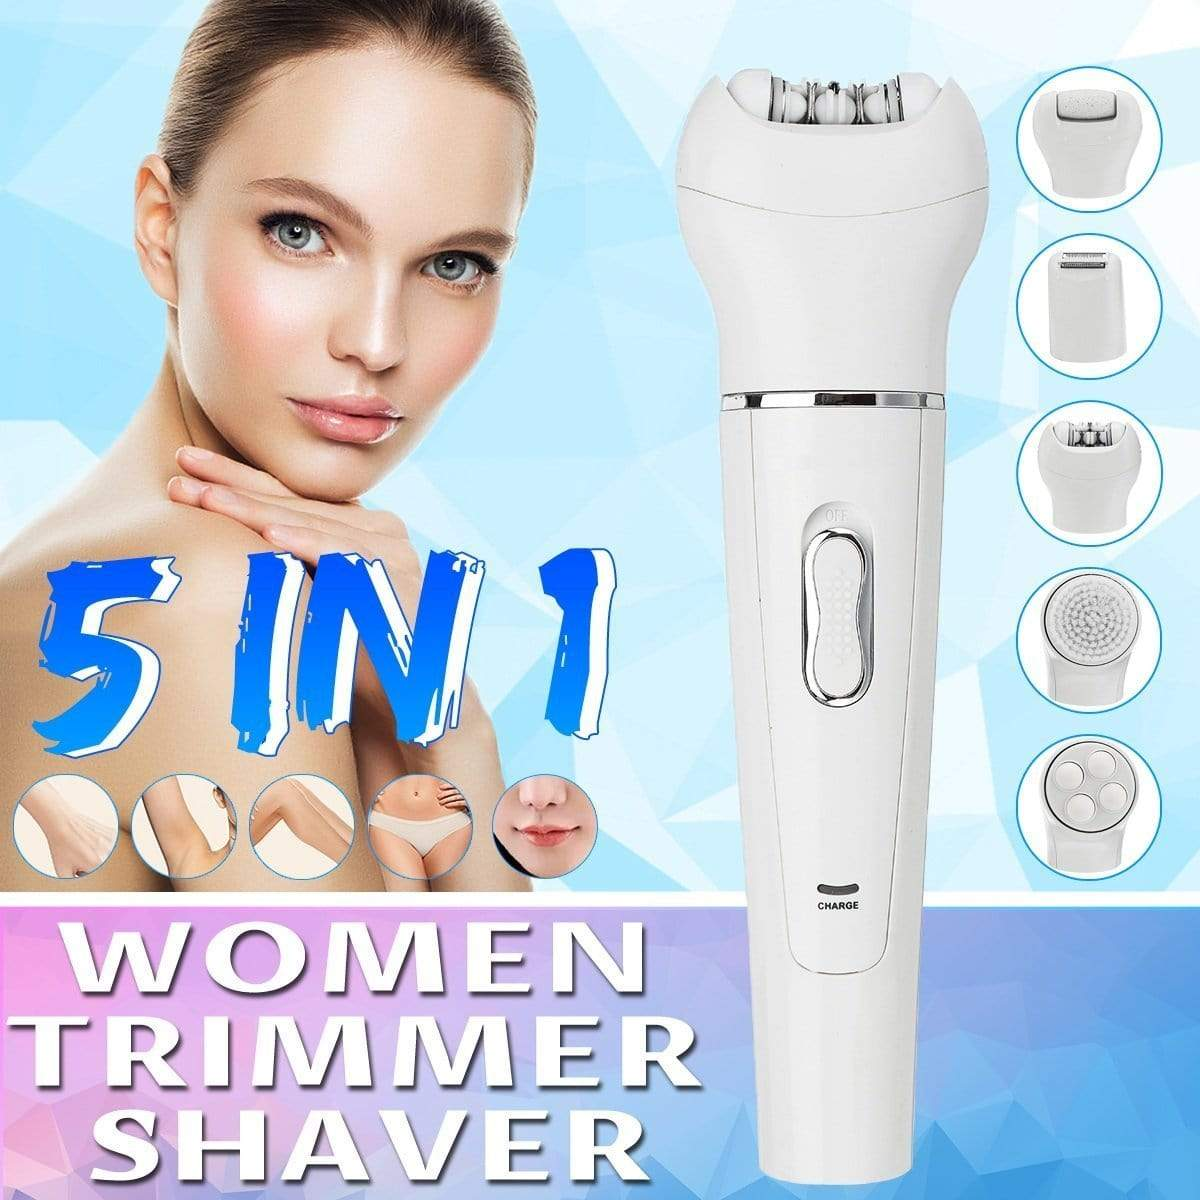 Horizon Care Hair Removal 5 in 1 Epilator with Facial Cleansing Brush Leg Shaver Bikini Trimmer Eyebrows Cordless Electric Skin Care